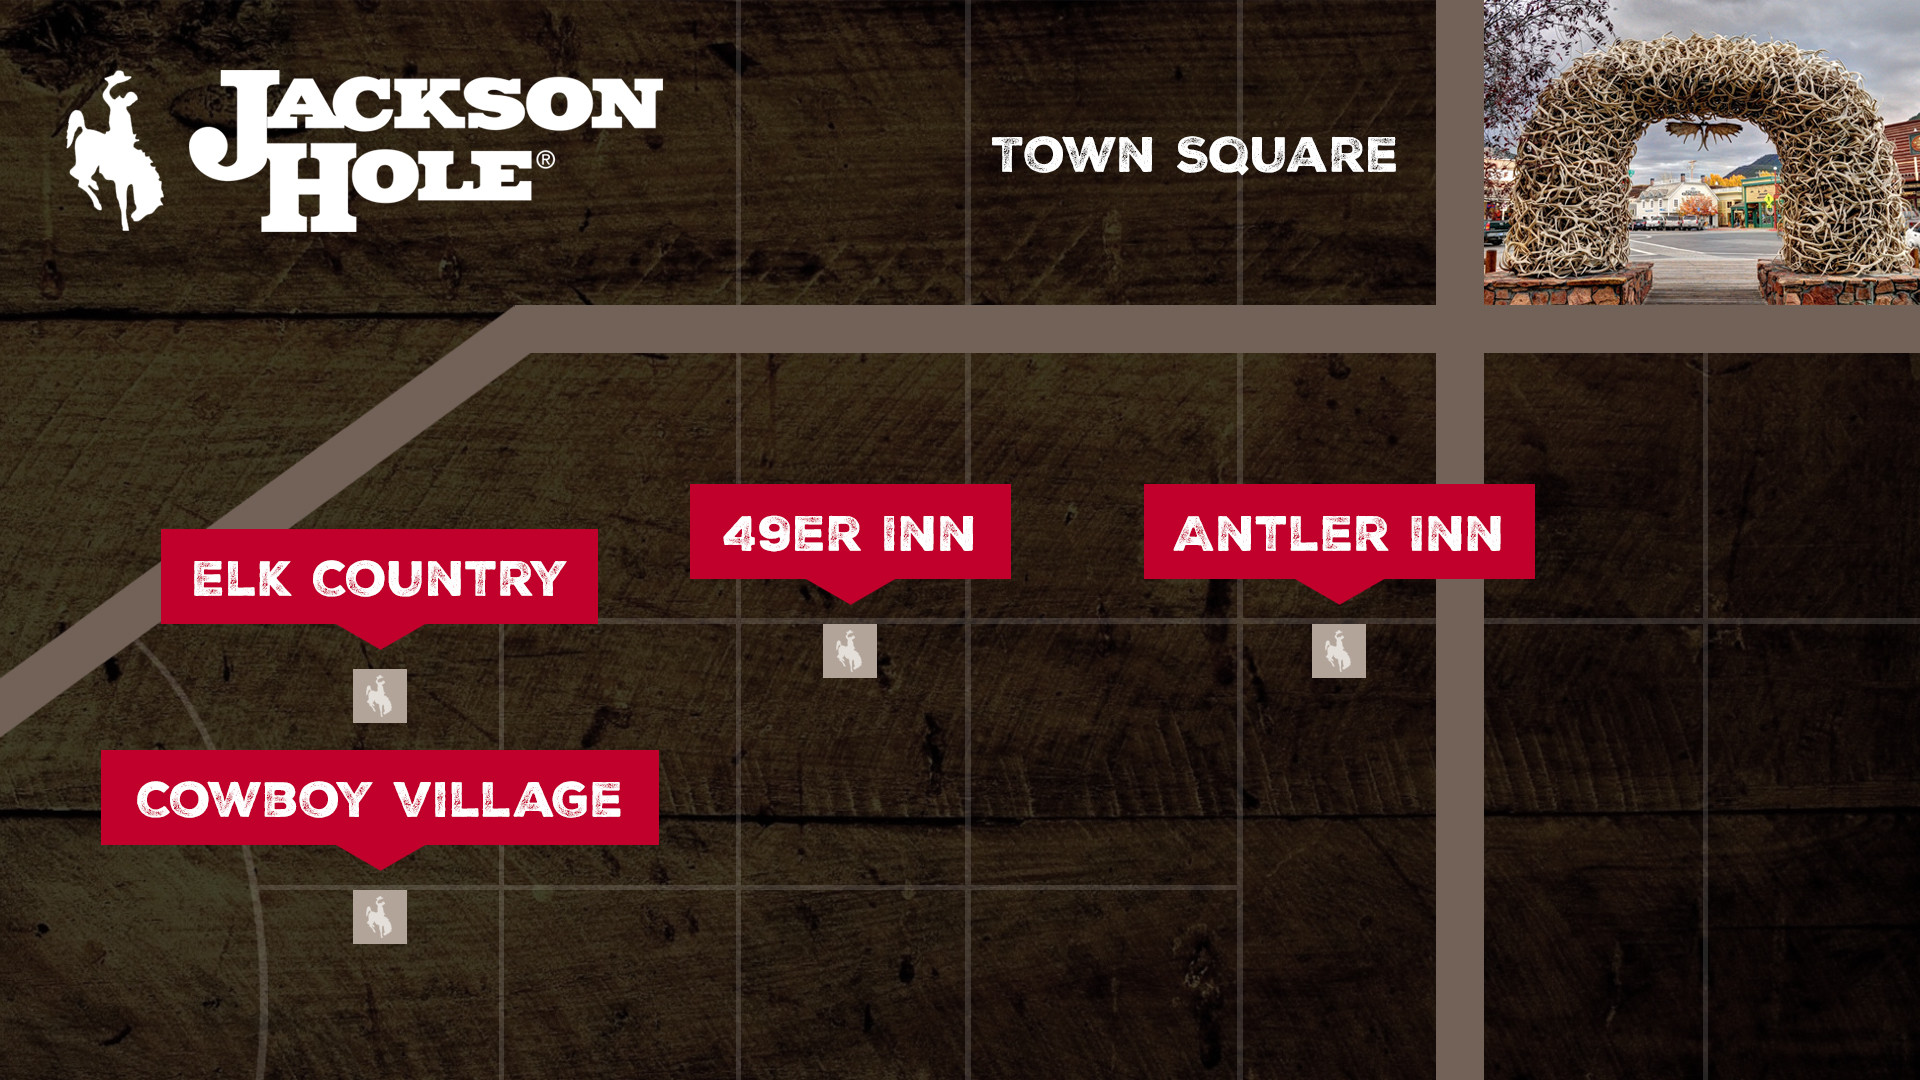 Jackson Hole WY Maps Directions Town Square Inns - Jackson hole us map